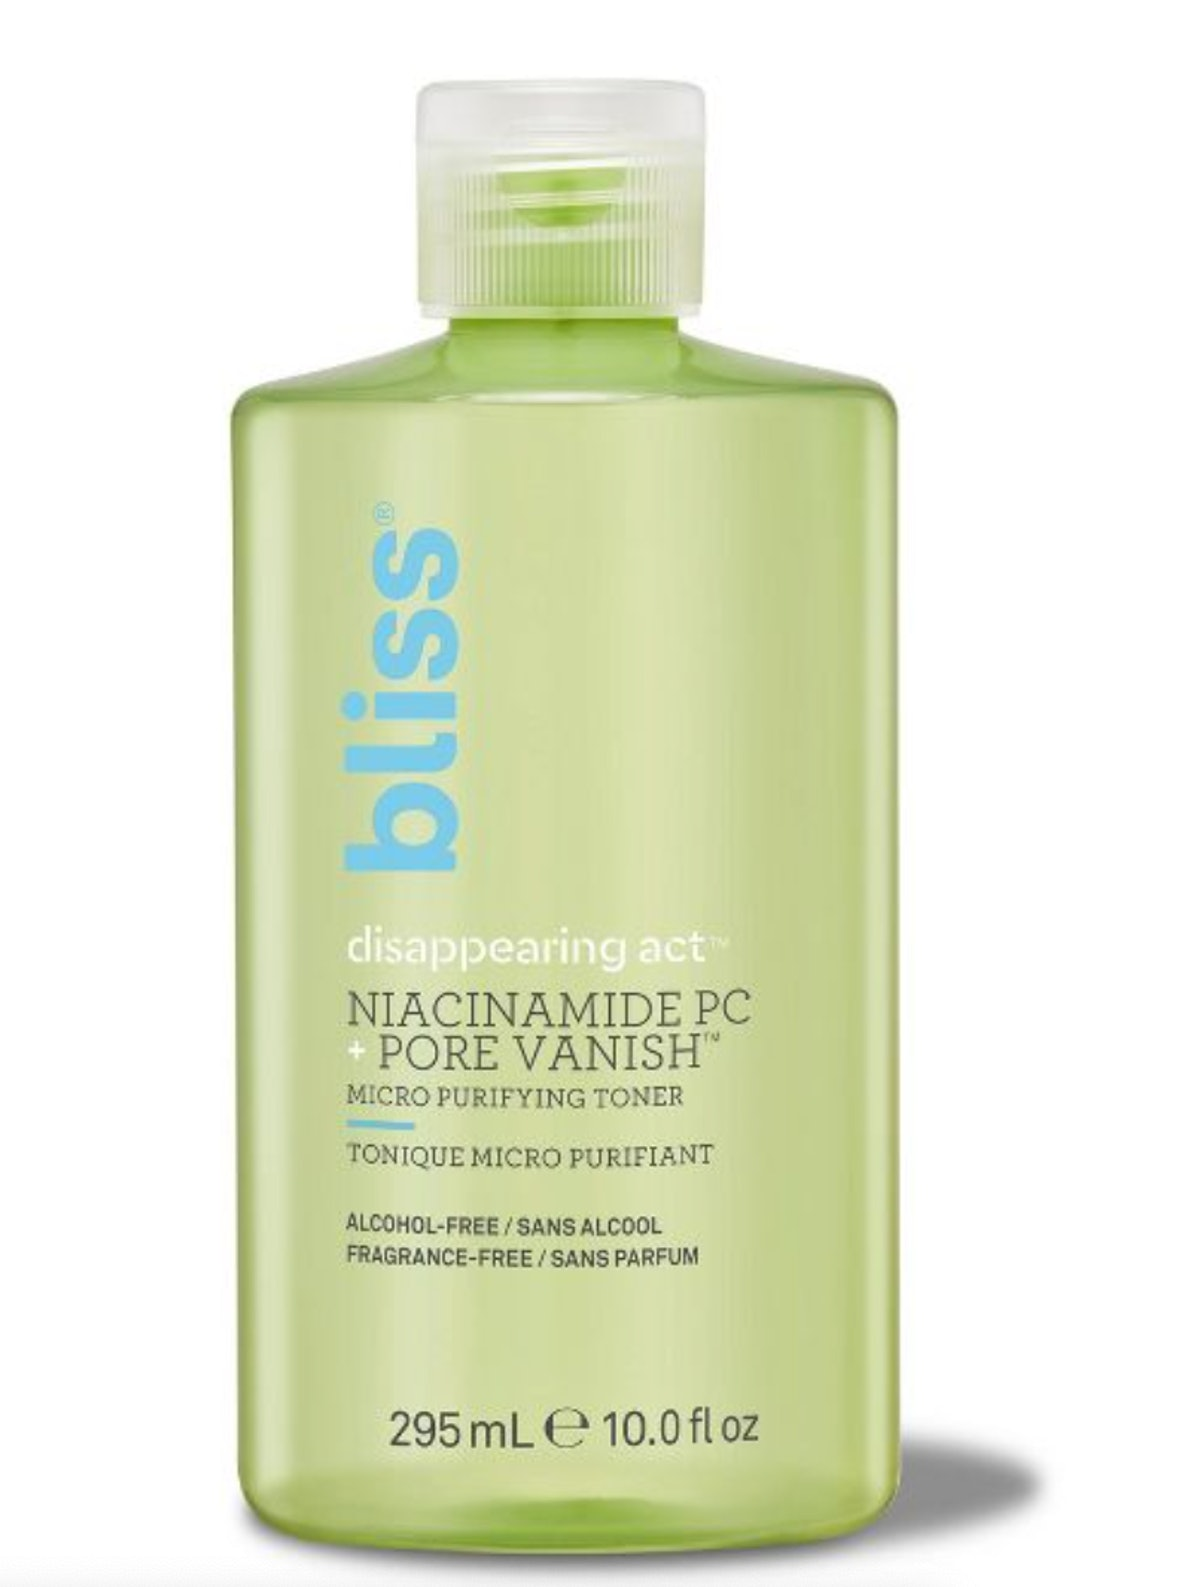 Disappearing Act Micro Purifying Toner